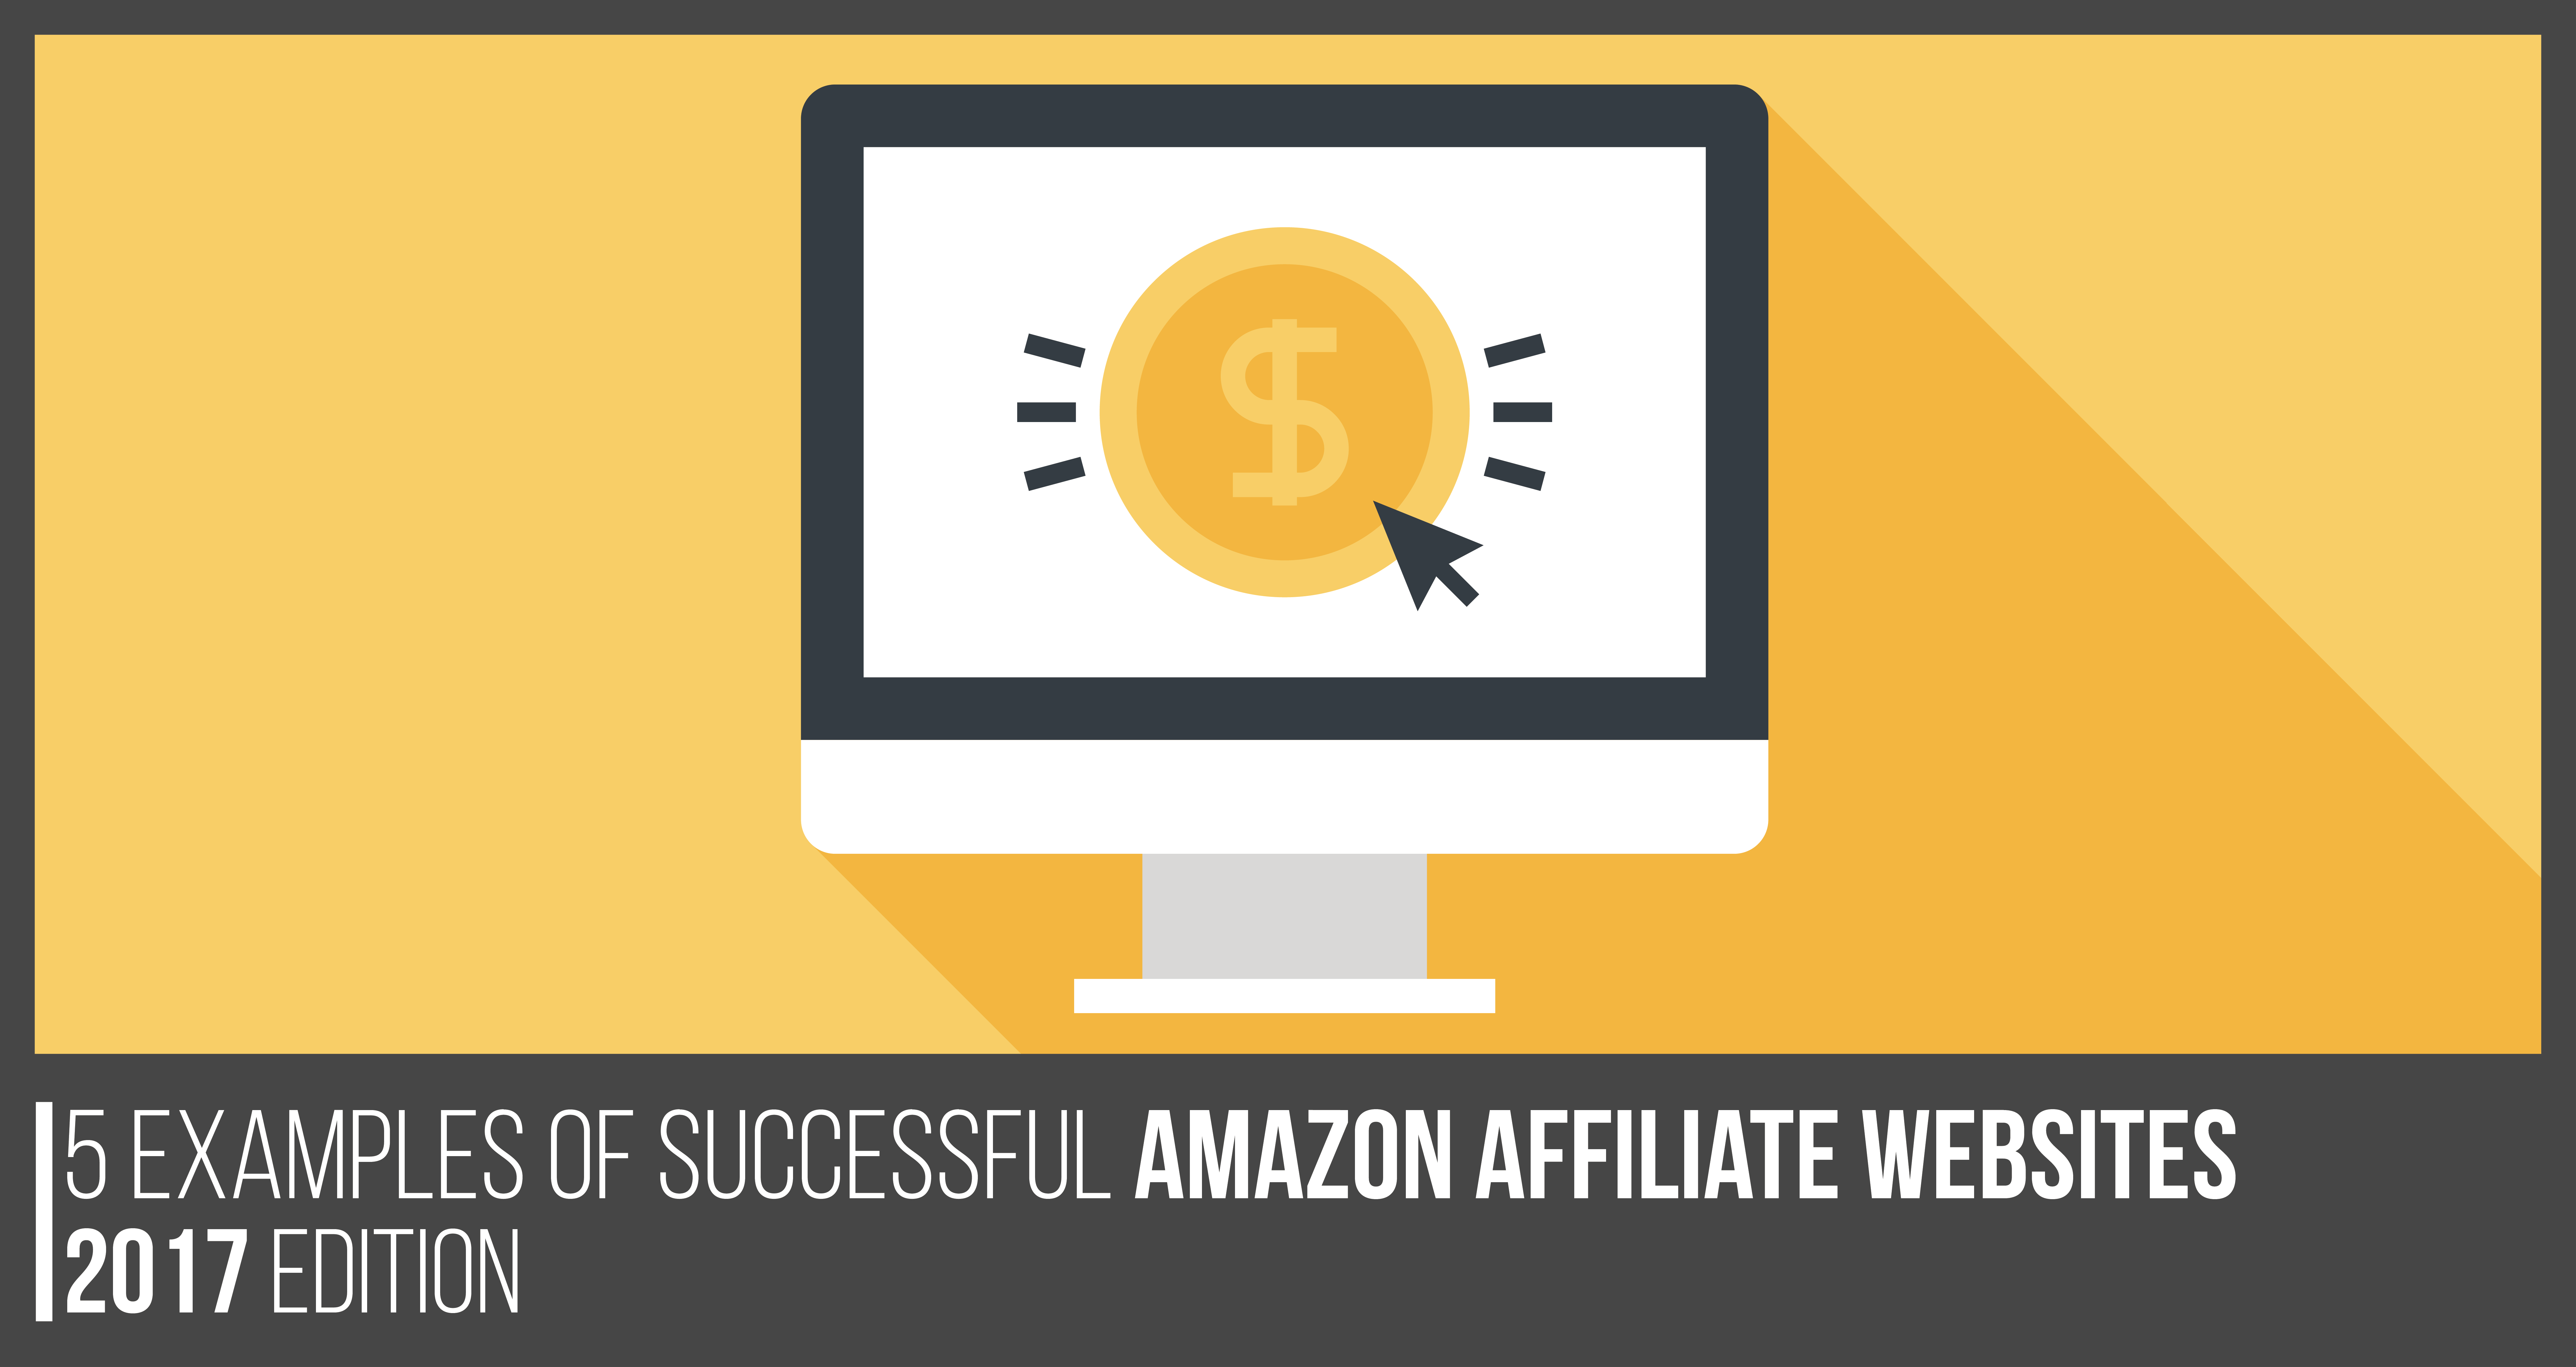 5 Great Examples of Successful Amazon Affiliate Websites